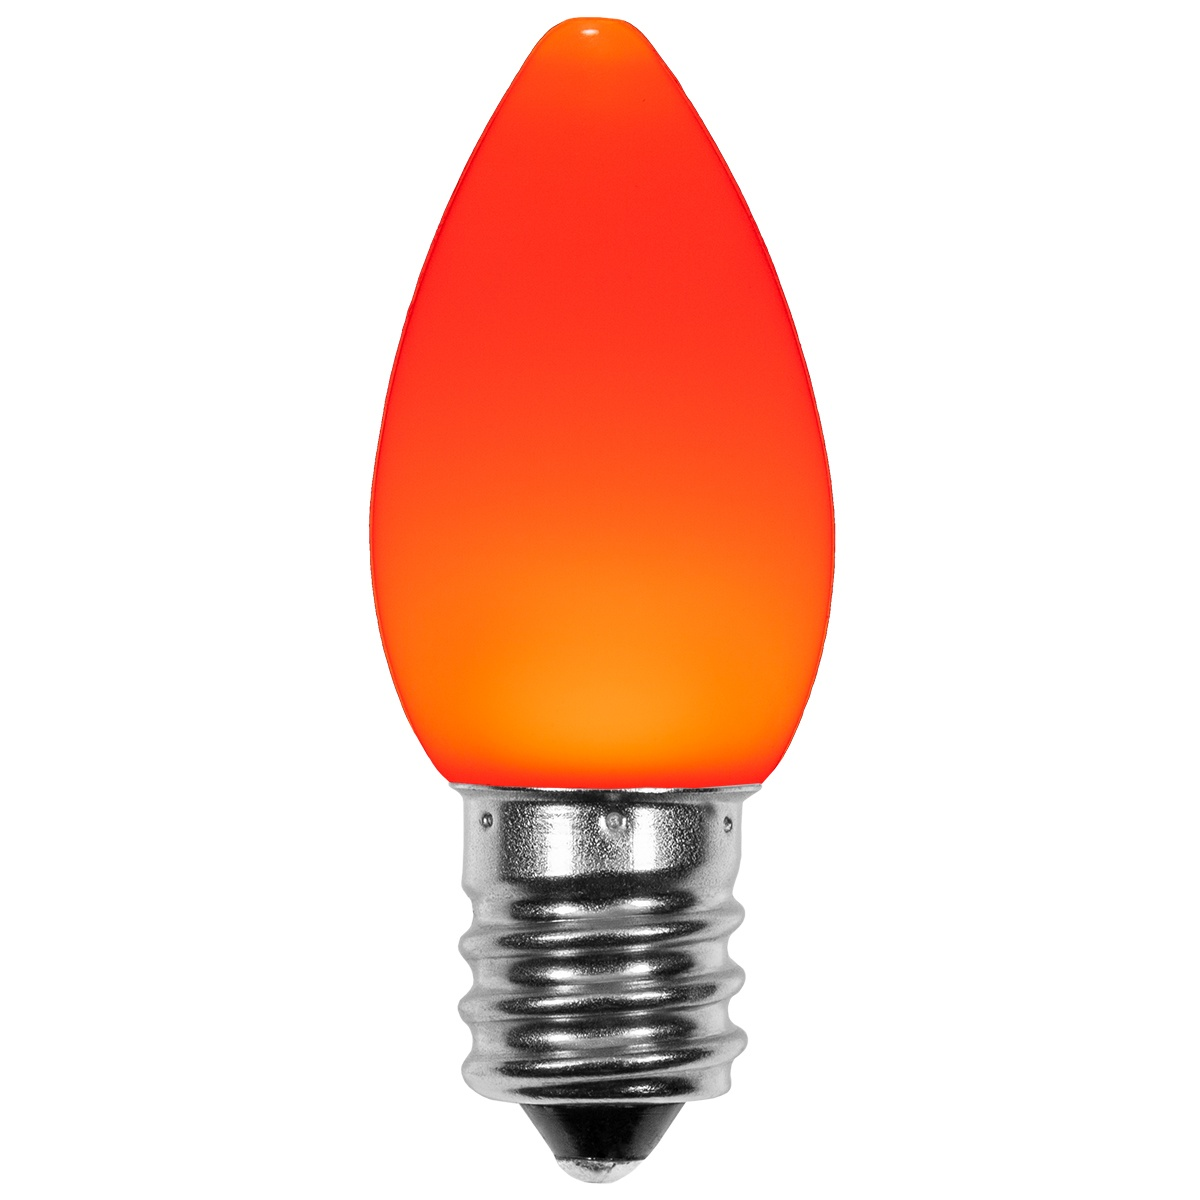 C7 Amber Orange Smooth Opticore Led Christmas Light Bulbs